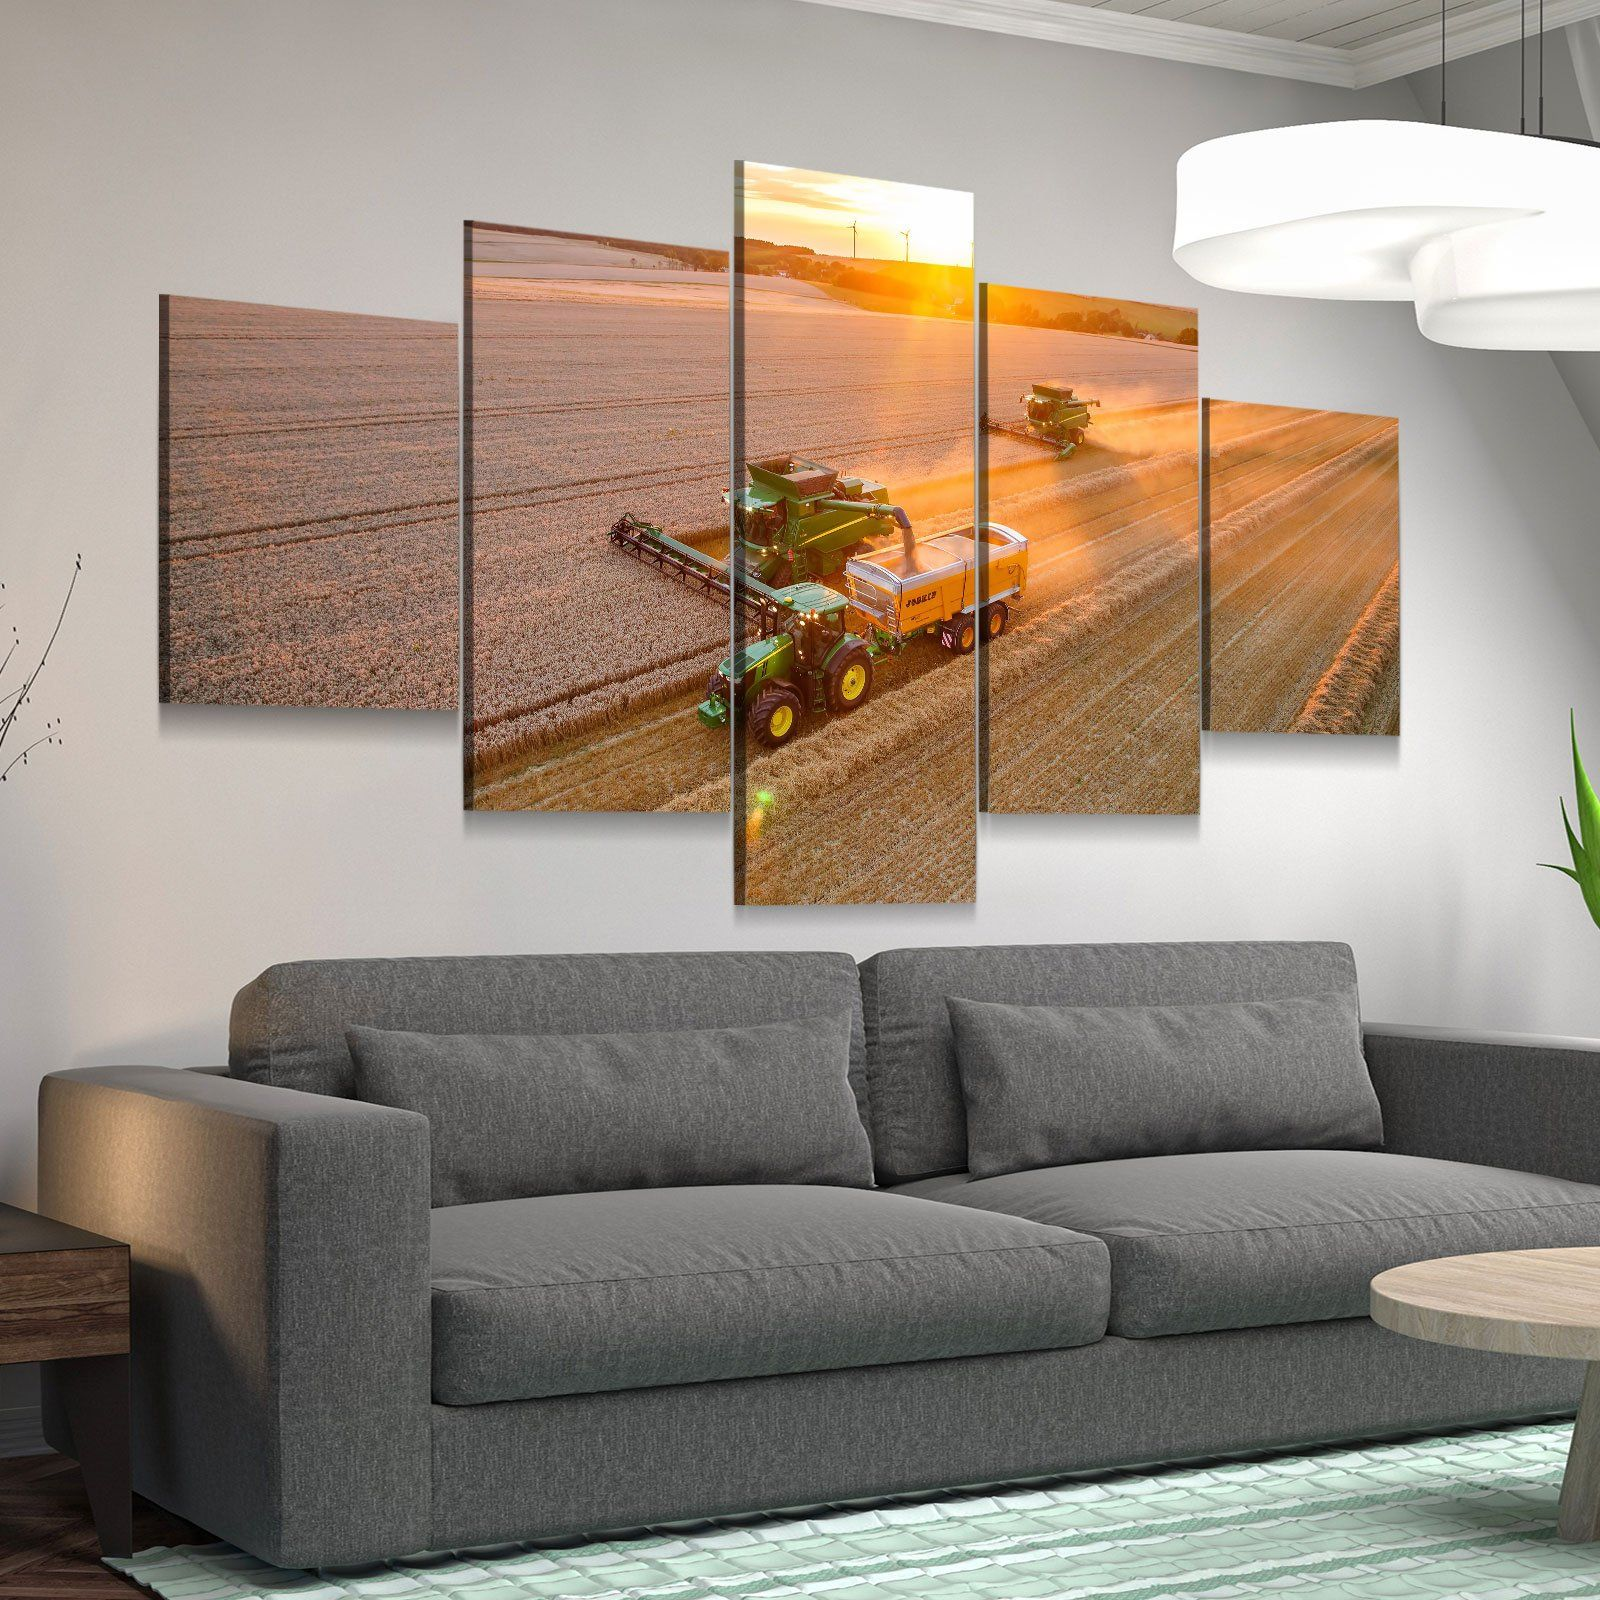 Harvest Time 5 panel canvas wall art